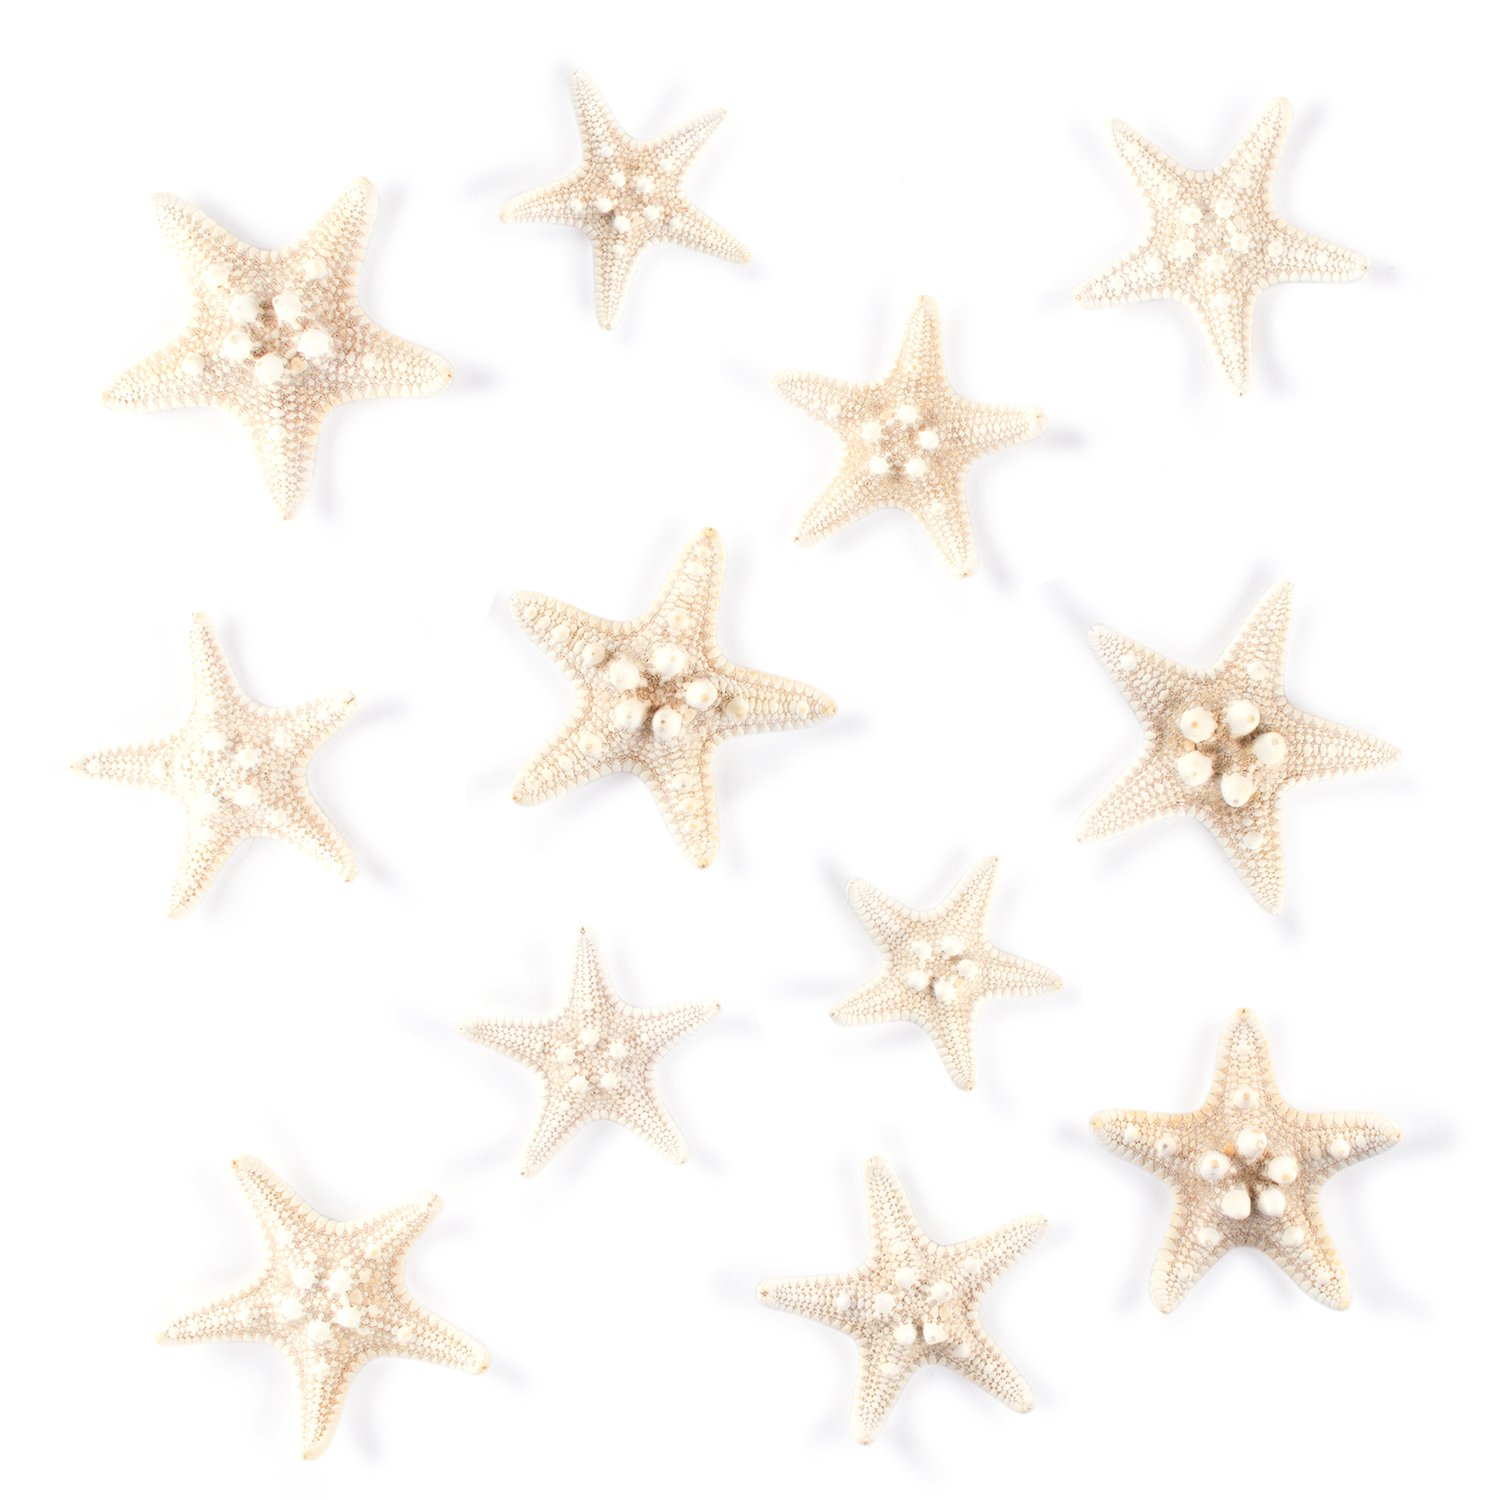 Starfish Natural Knobby Mini Beach Sea Stars for Wedding Seashell Crafts (Small, 12 Piece) by Super Z Outlet SZ330-S